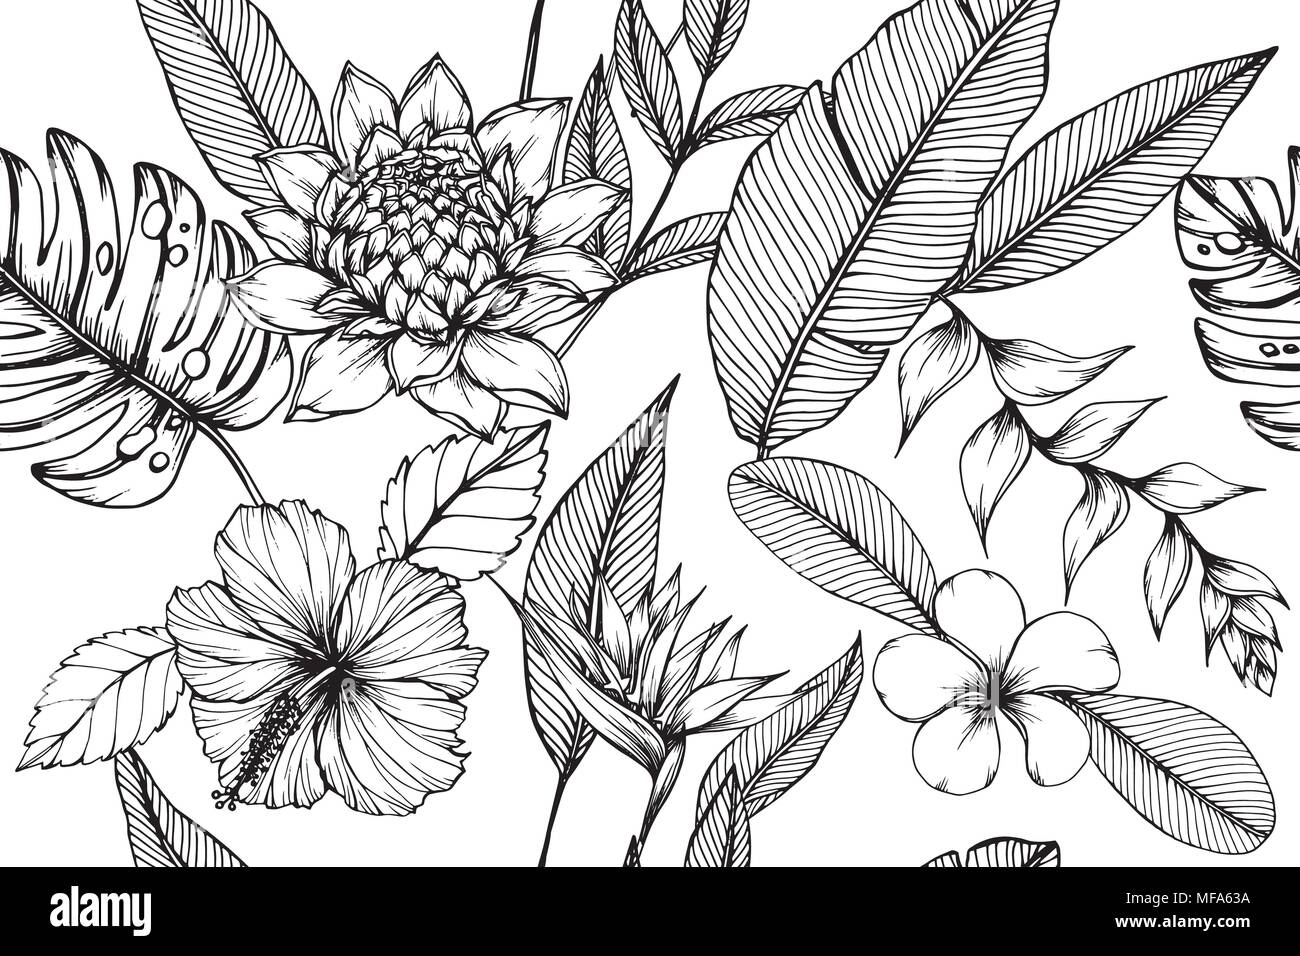 Hawaiian pattern seamless background with flower and leaf  drawing illustration. - Stock Image